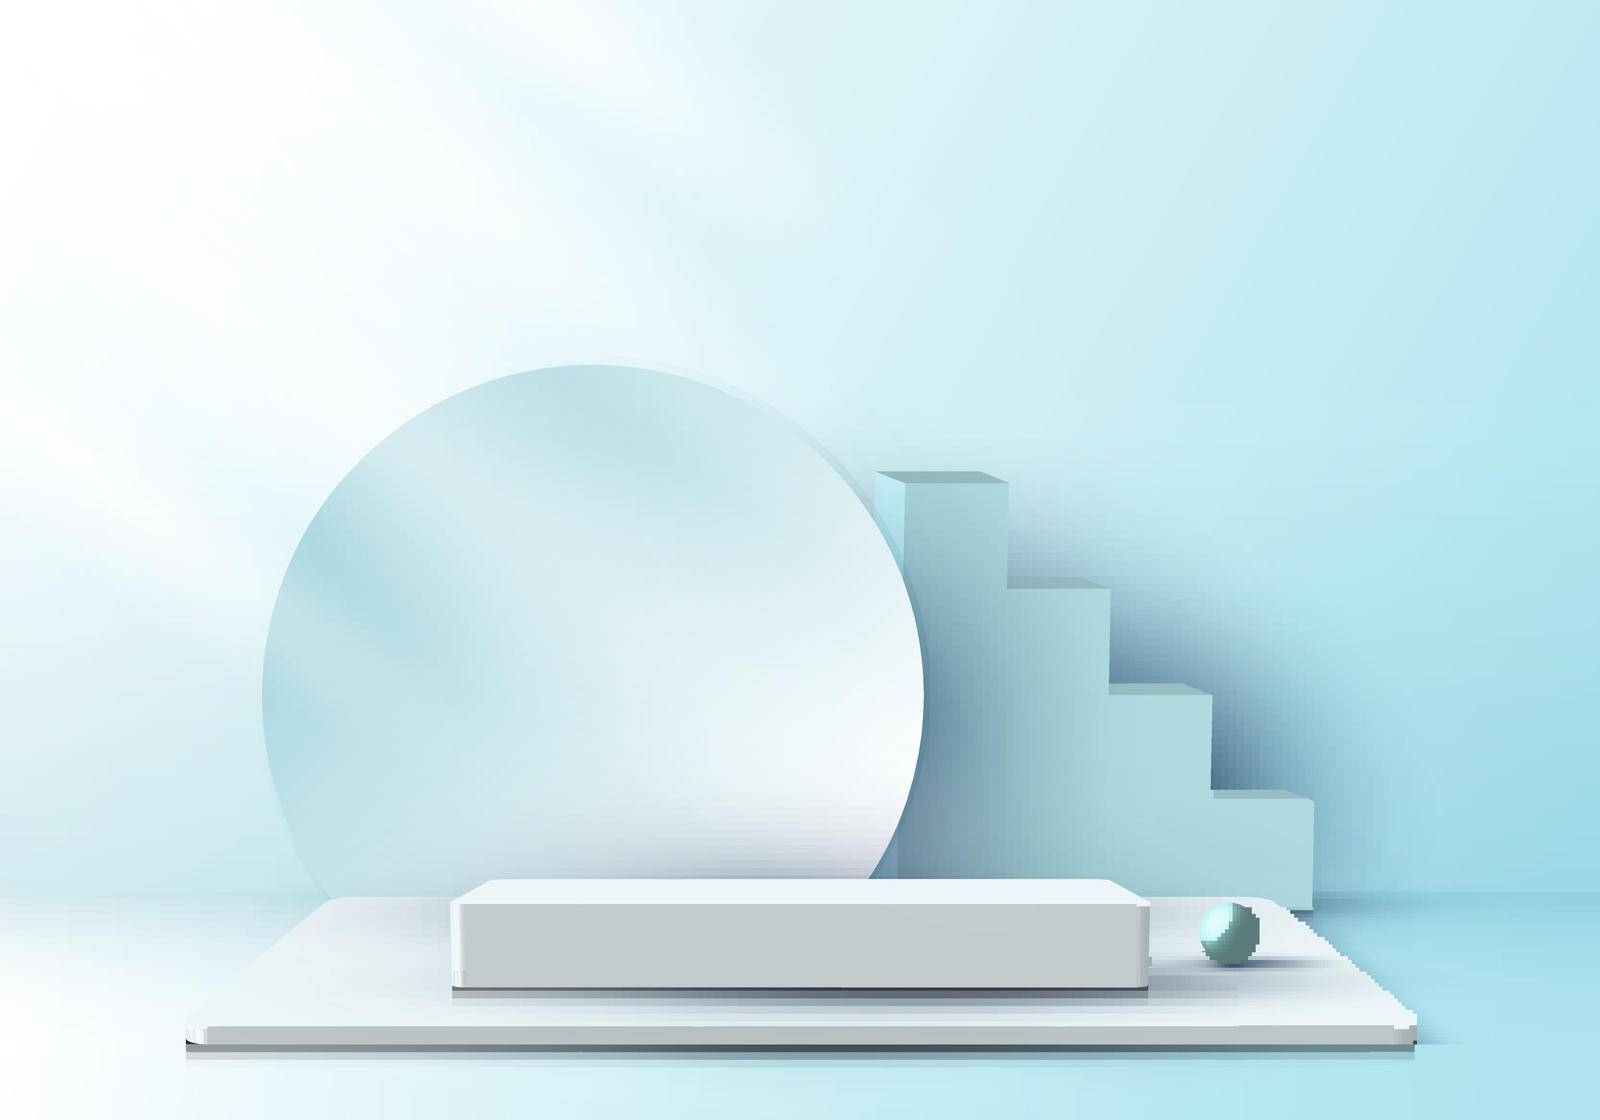 3D realistic elegant display white pedestal podium with circle backdrop on soft blue color studio room background with light. You can use for show cosmetic products, stage showcase. Vector illustration